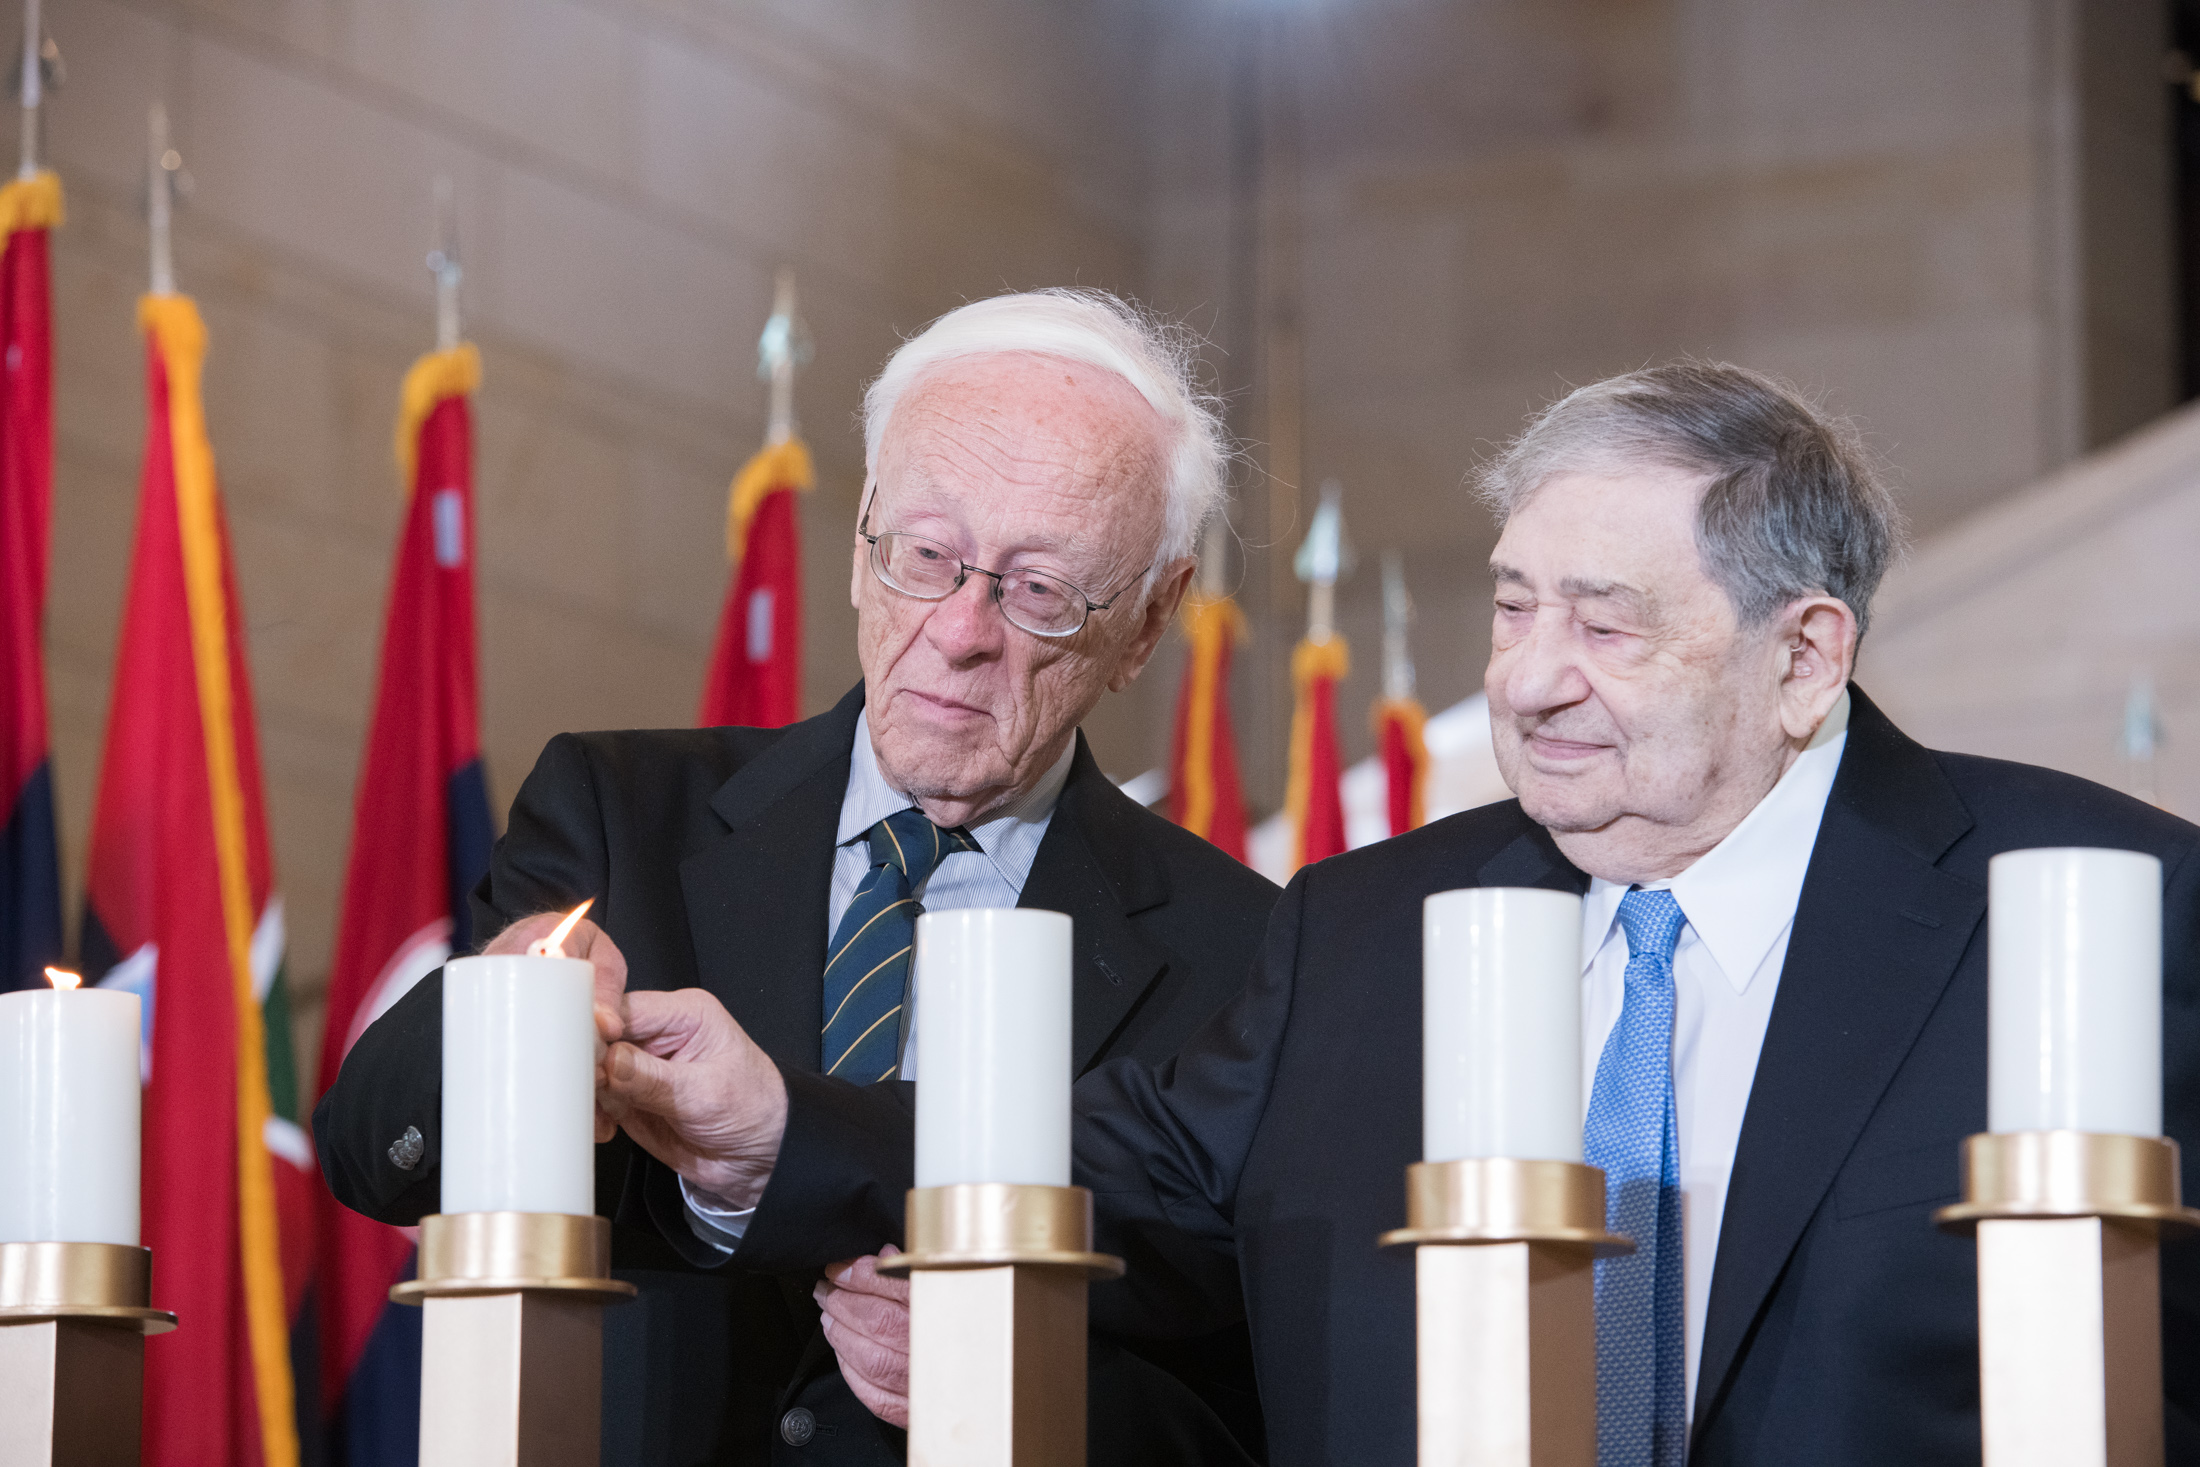 Holocaust survivors lit six remembrance candles during the ceremony. Photo by Kristie Boyd.